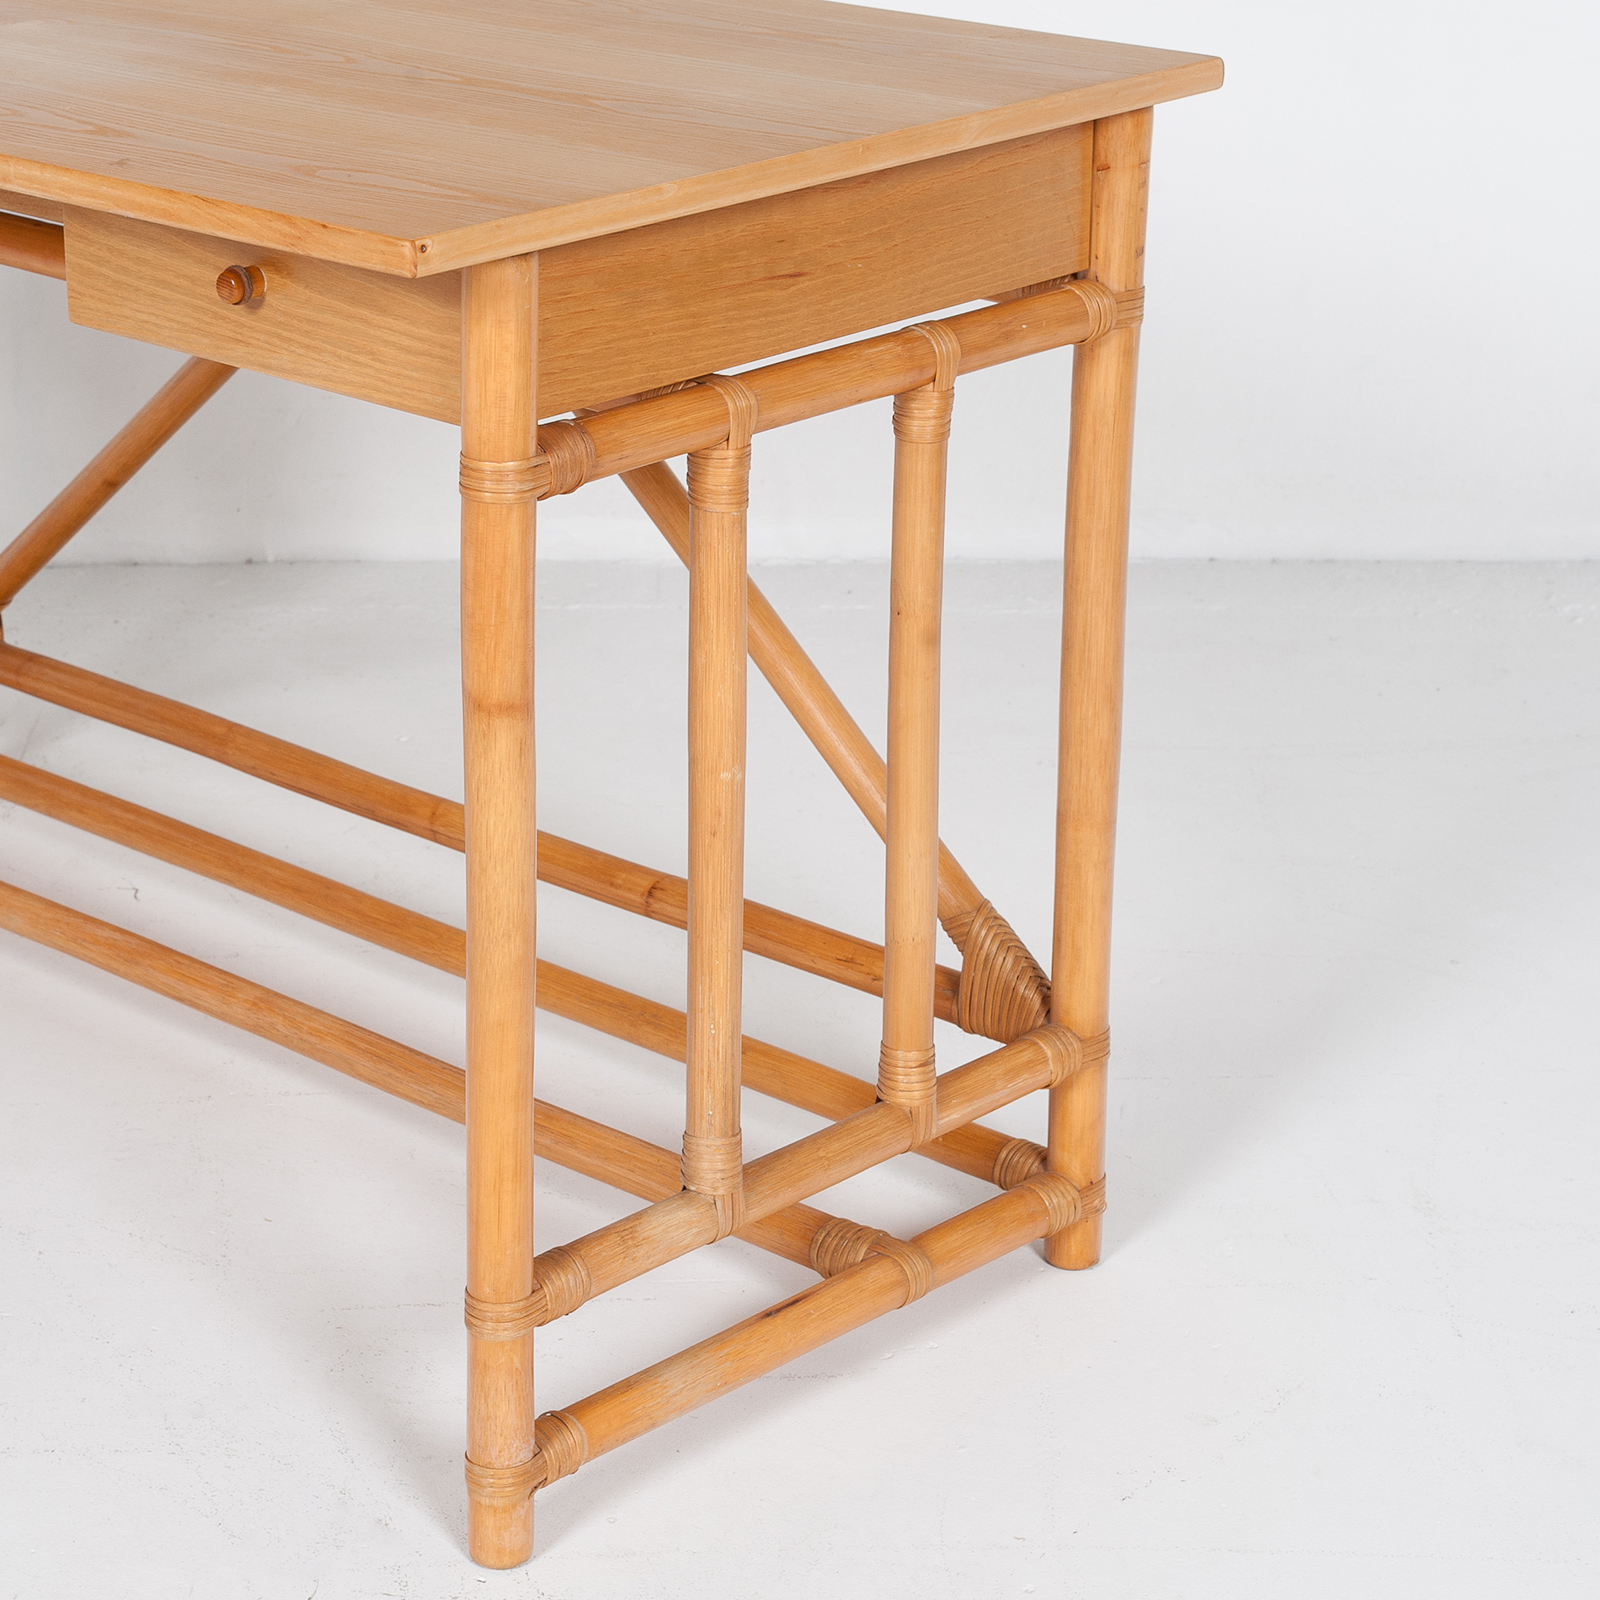 Desk And Chair In Bamboo (mt De 194 705 It)27